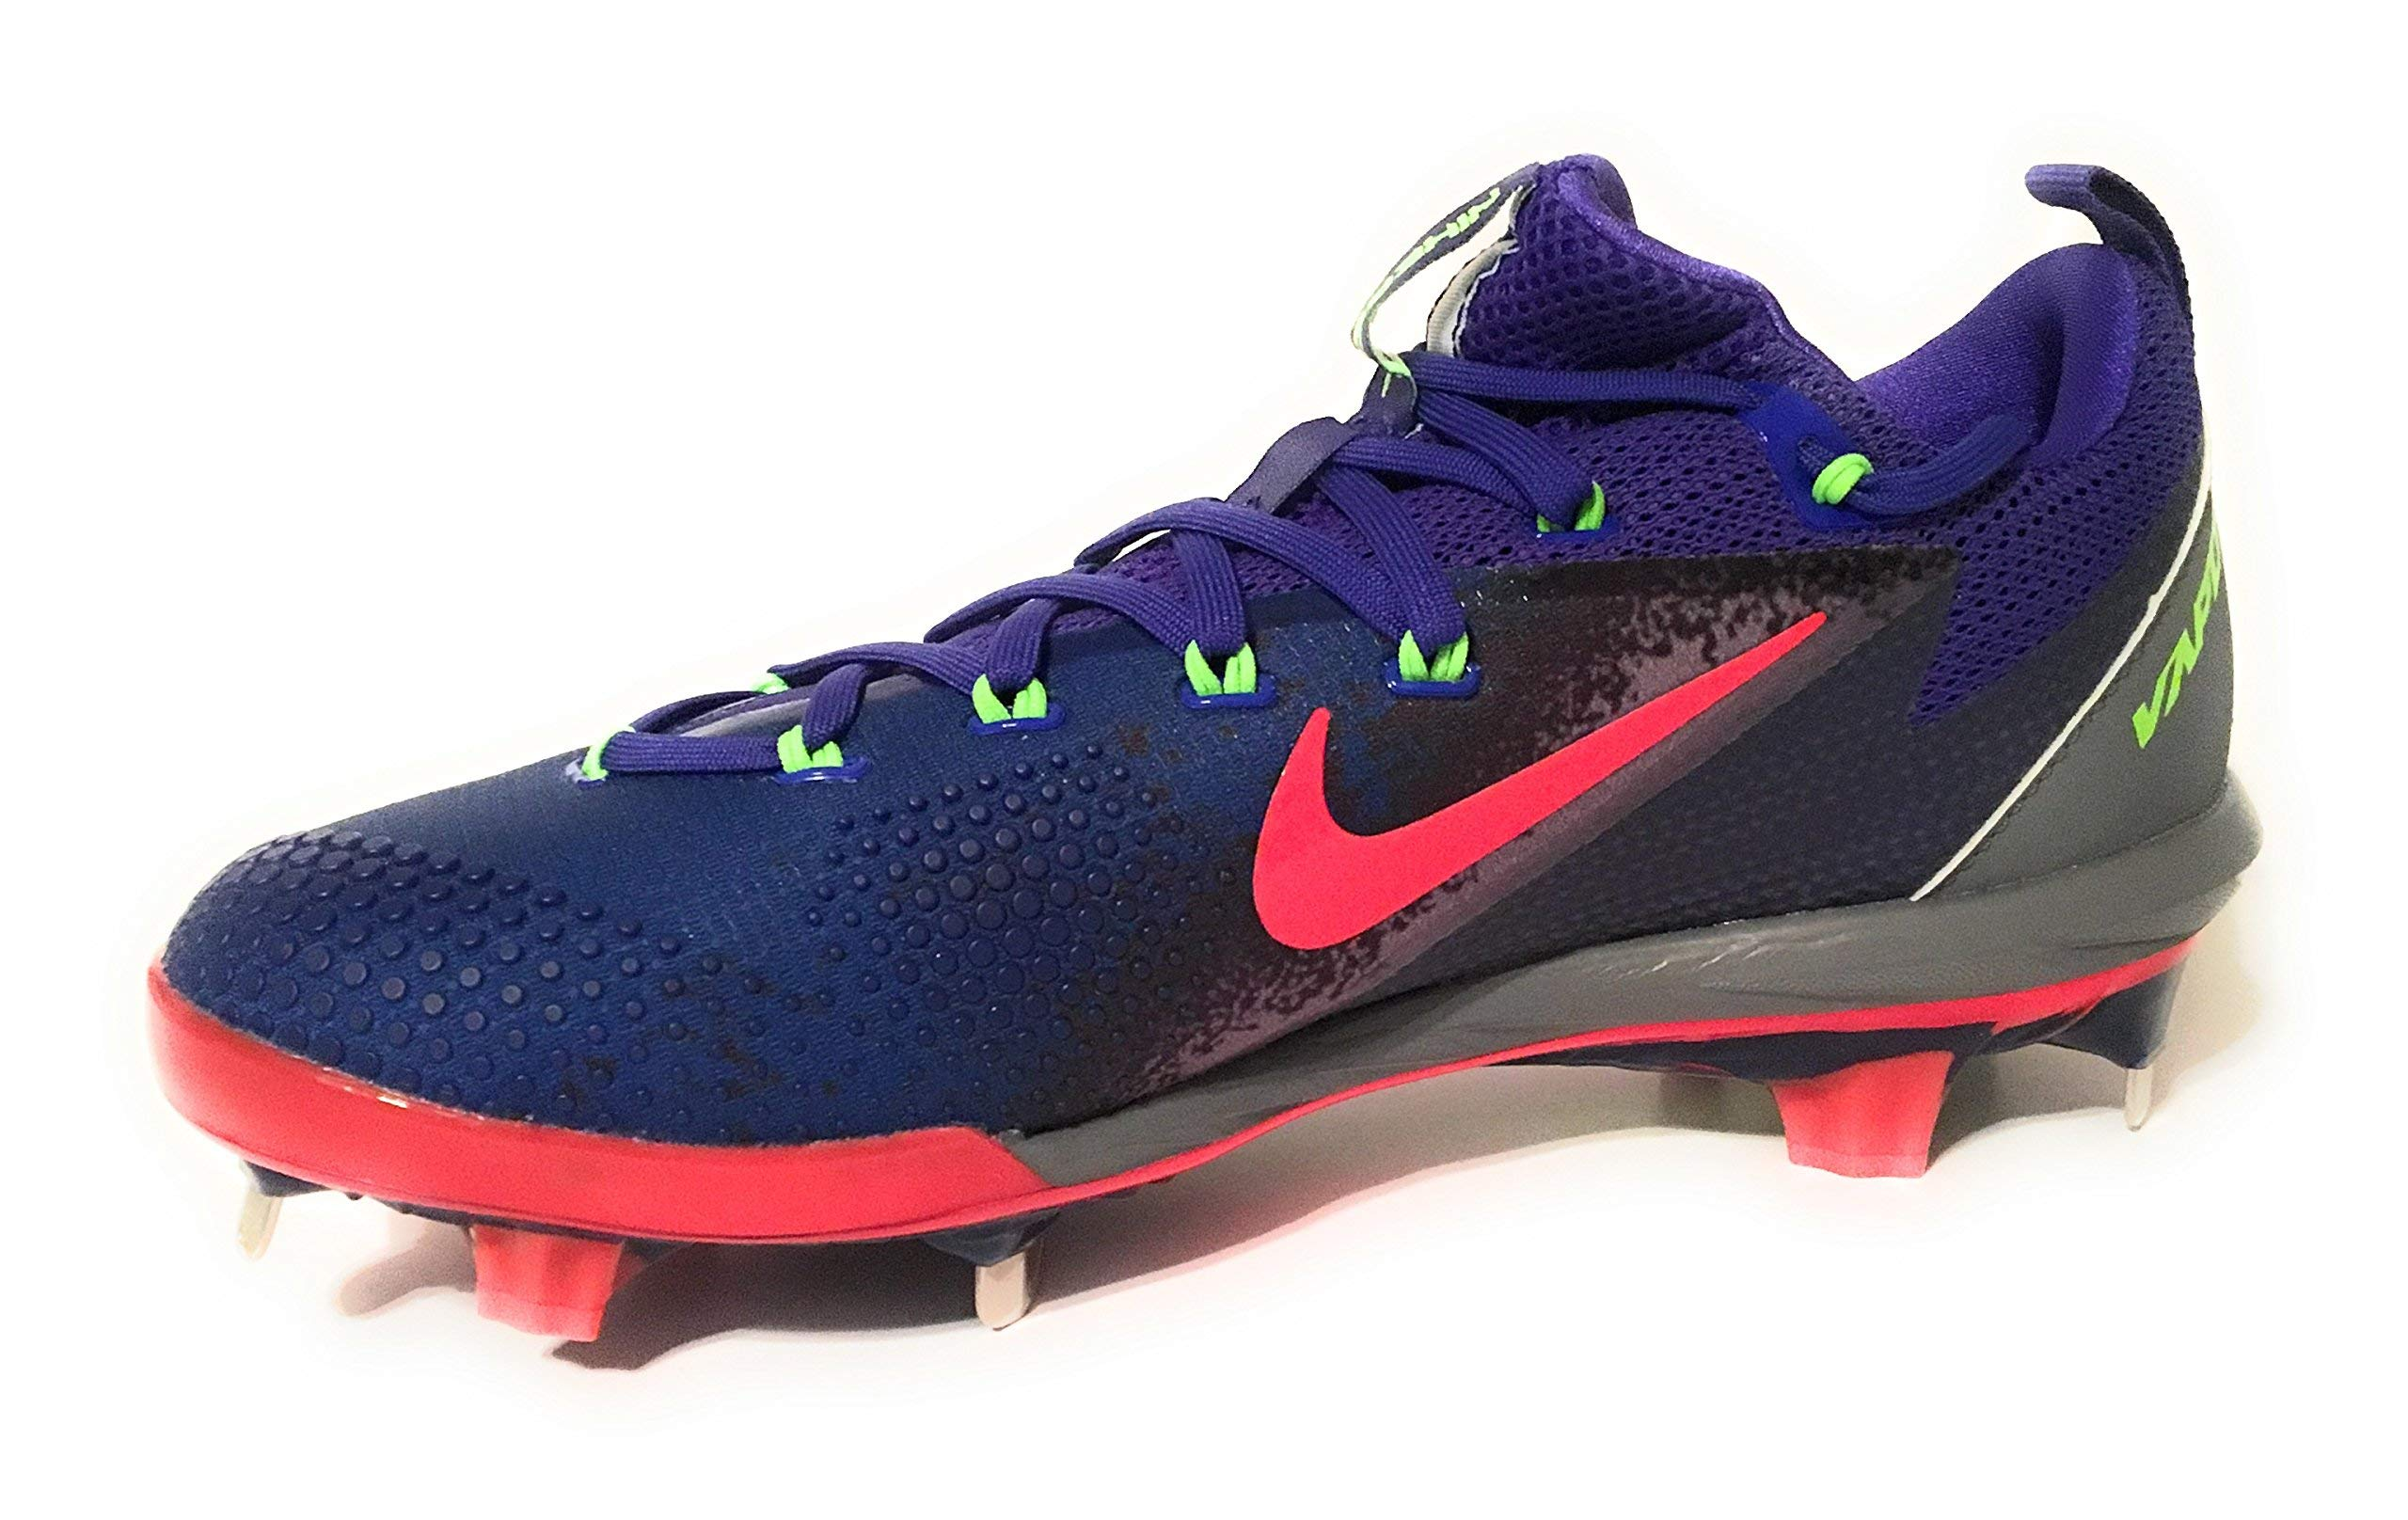 4f3a0dc022db Galleon - NIKE Men s Lunar Vapor Ultrafly Elite Baseball Cleat (7.5 D(M)  US